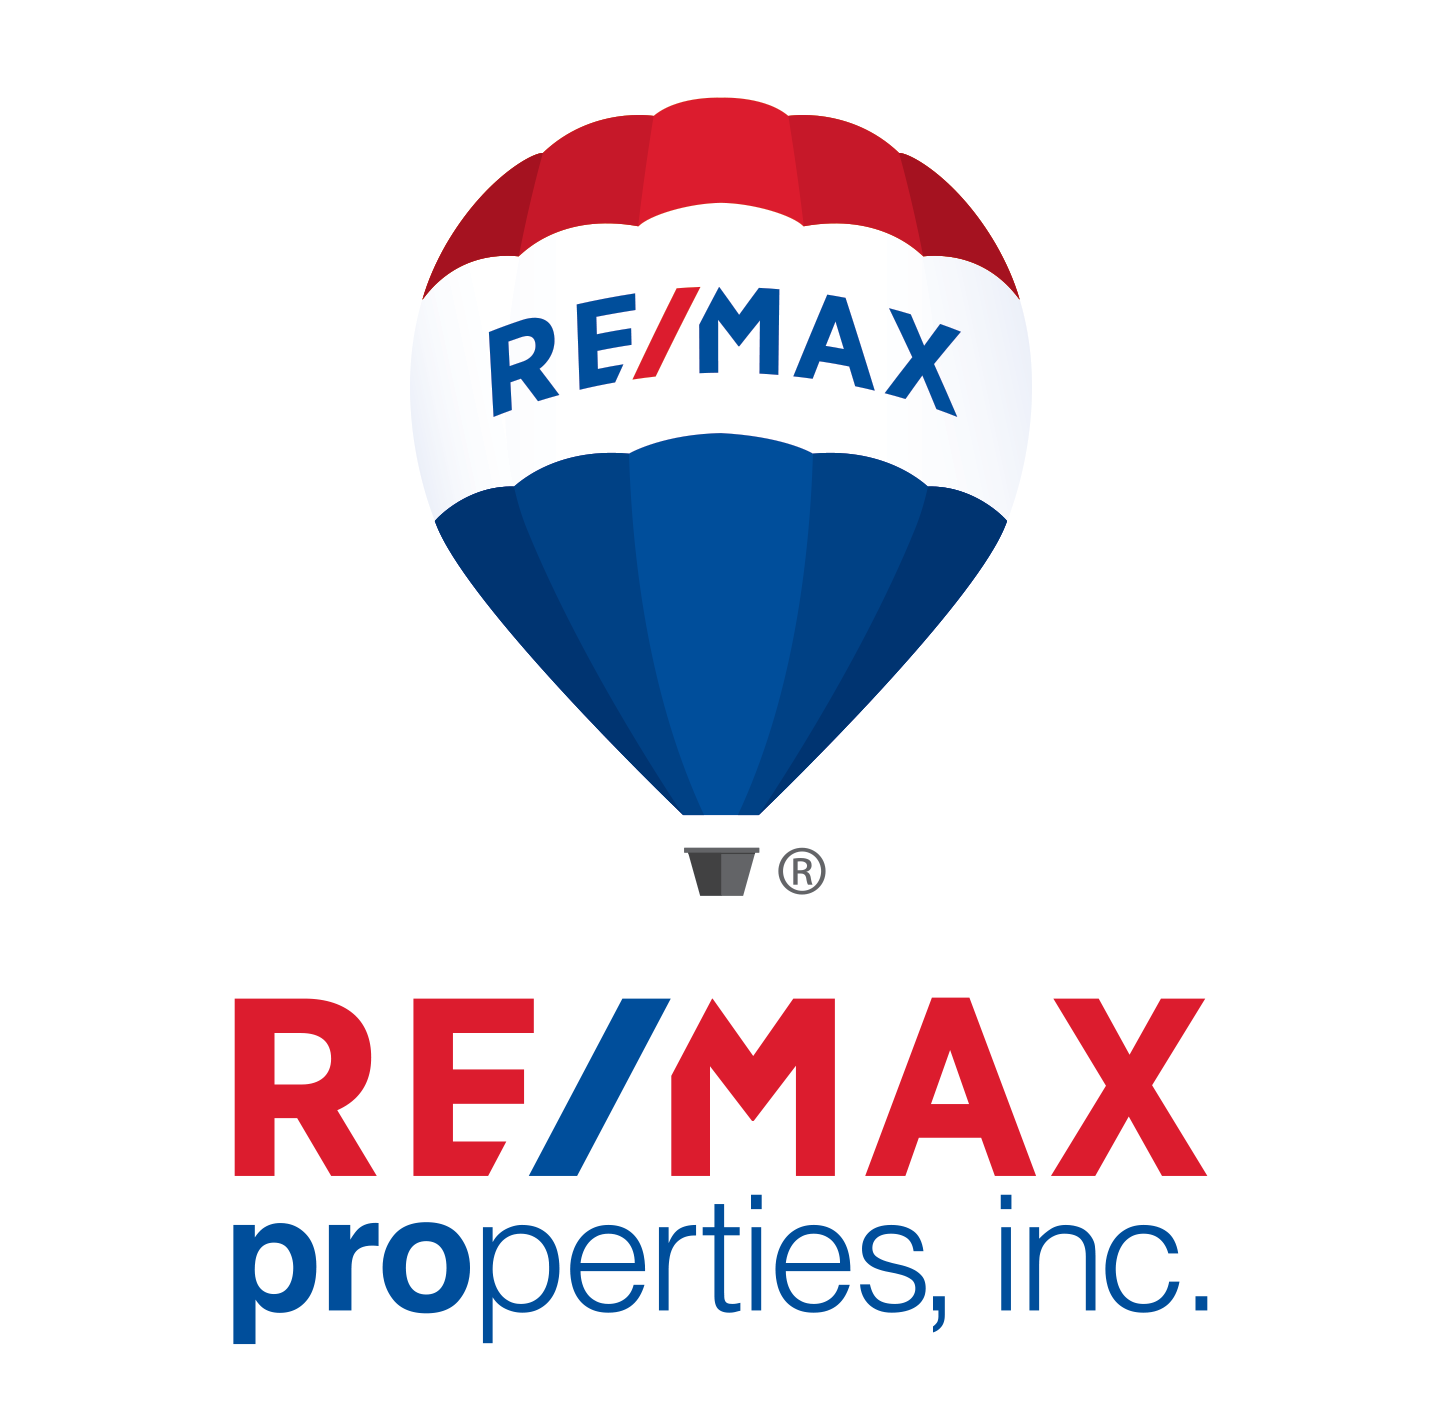 Brian Slivka - RE/MAX Properties, Inc.